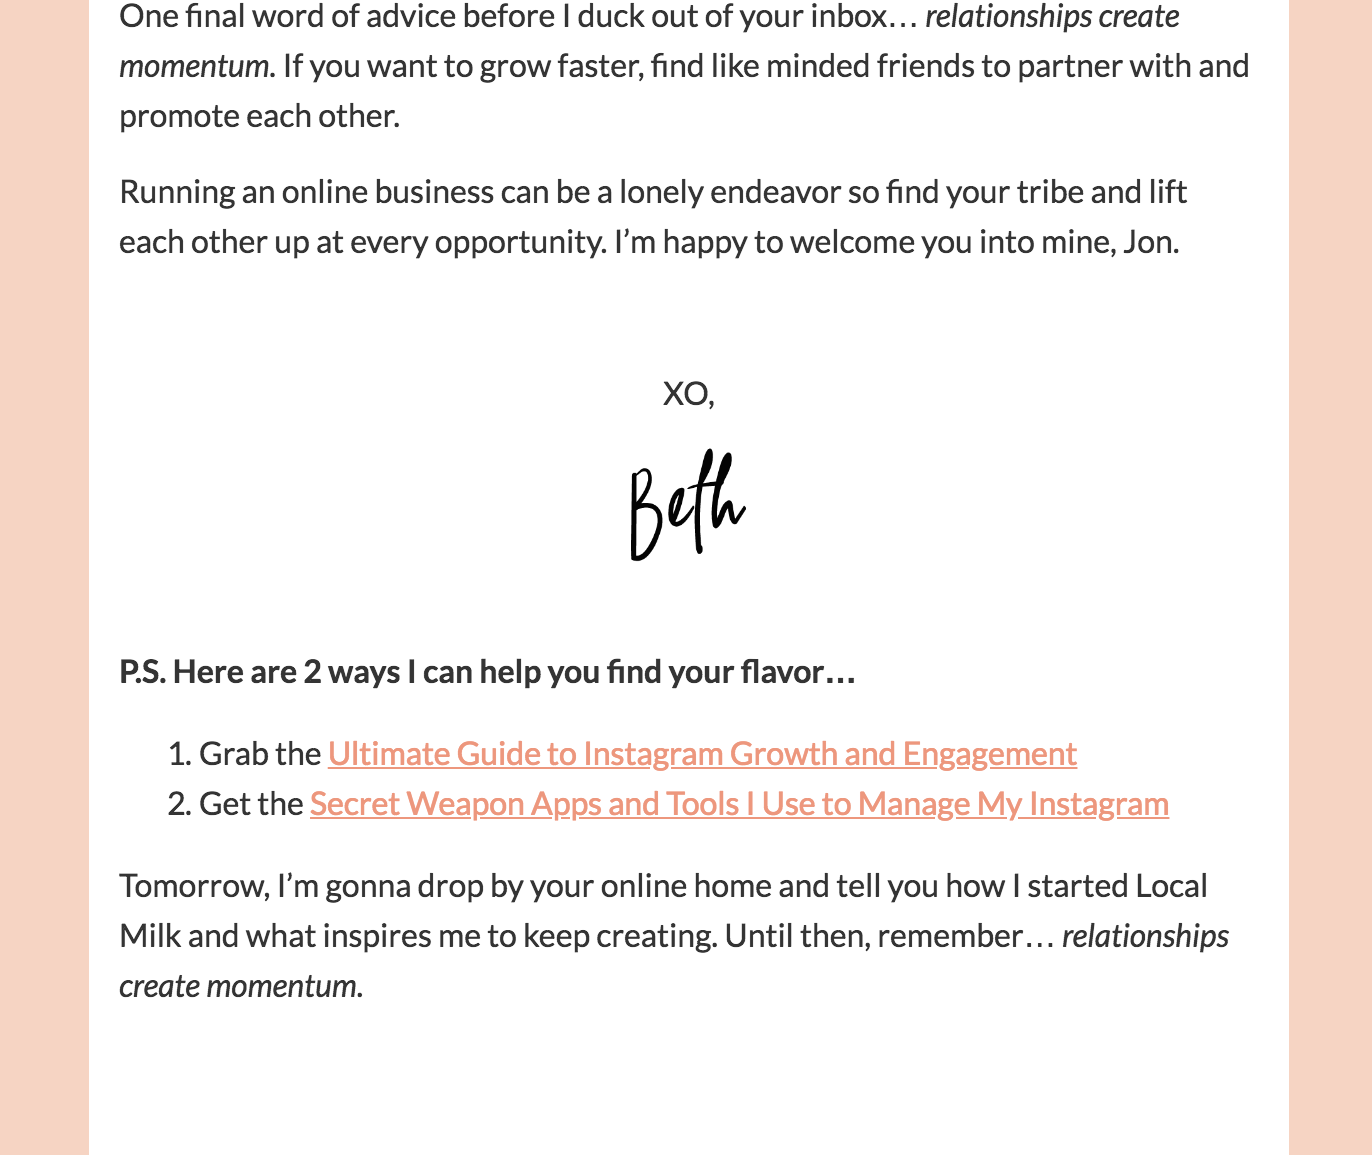 ending of email with next steps listed